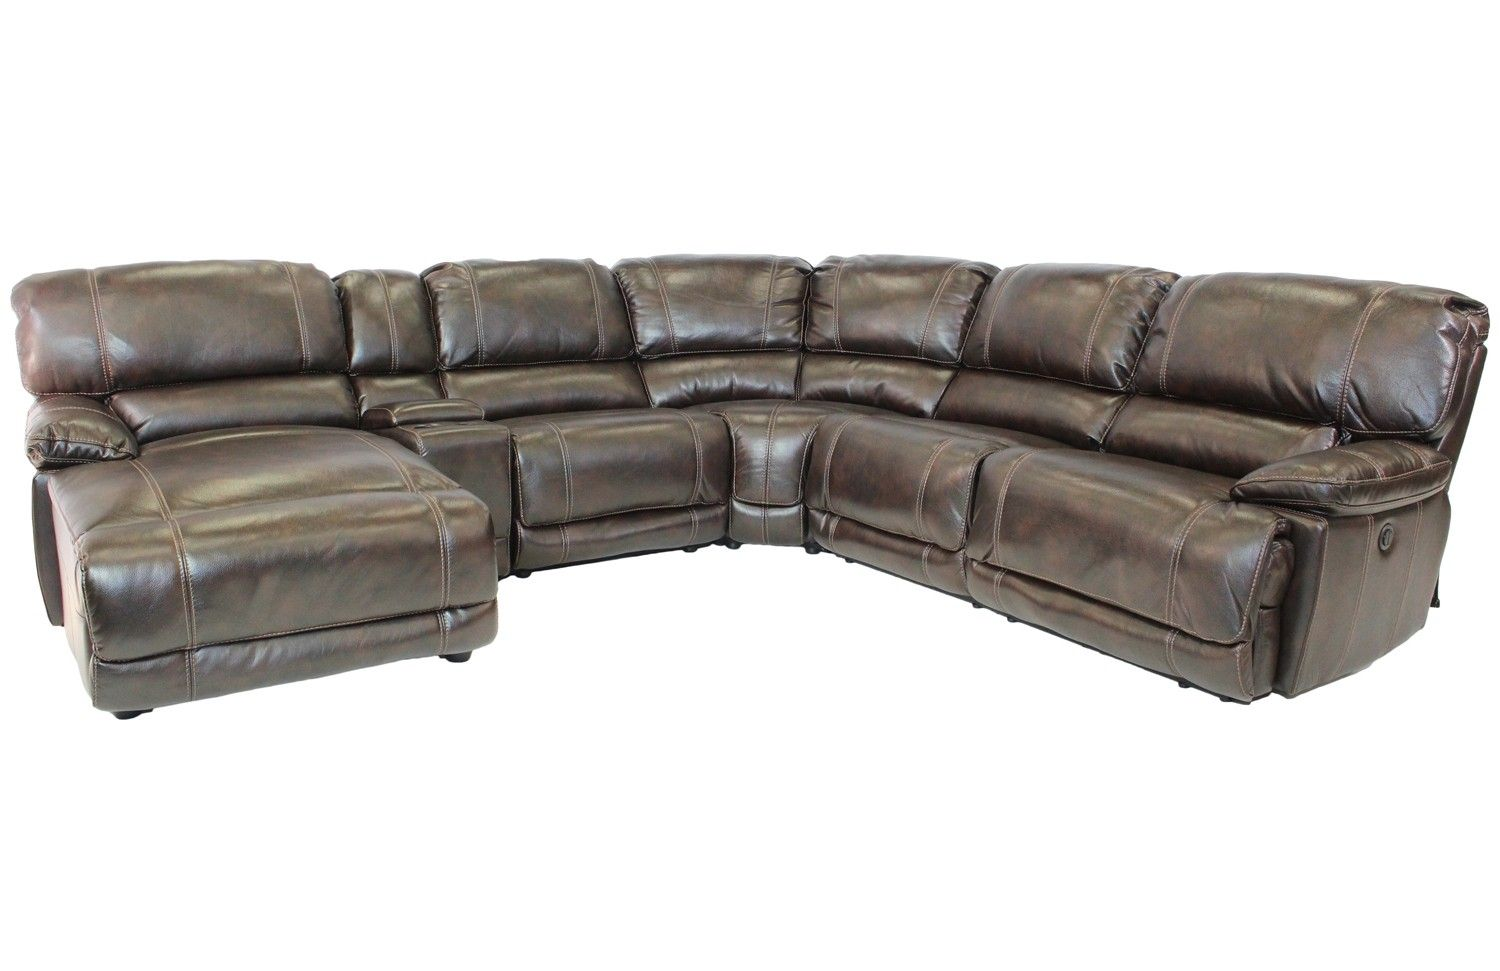 Living Room Furniture For Less Sectional Living Room Media Image Mor Sectional Living Room Media